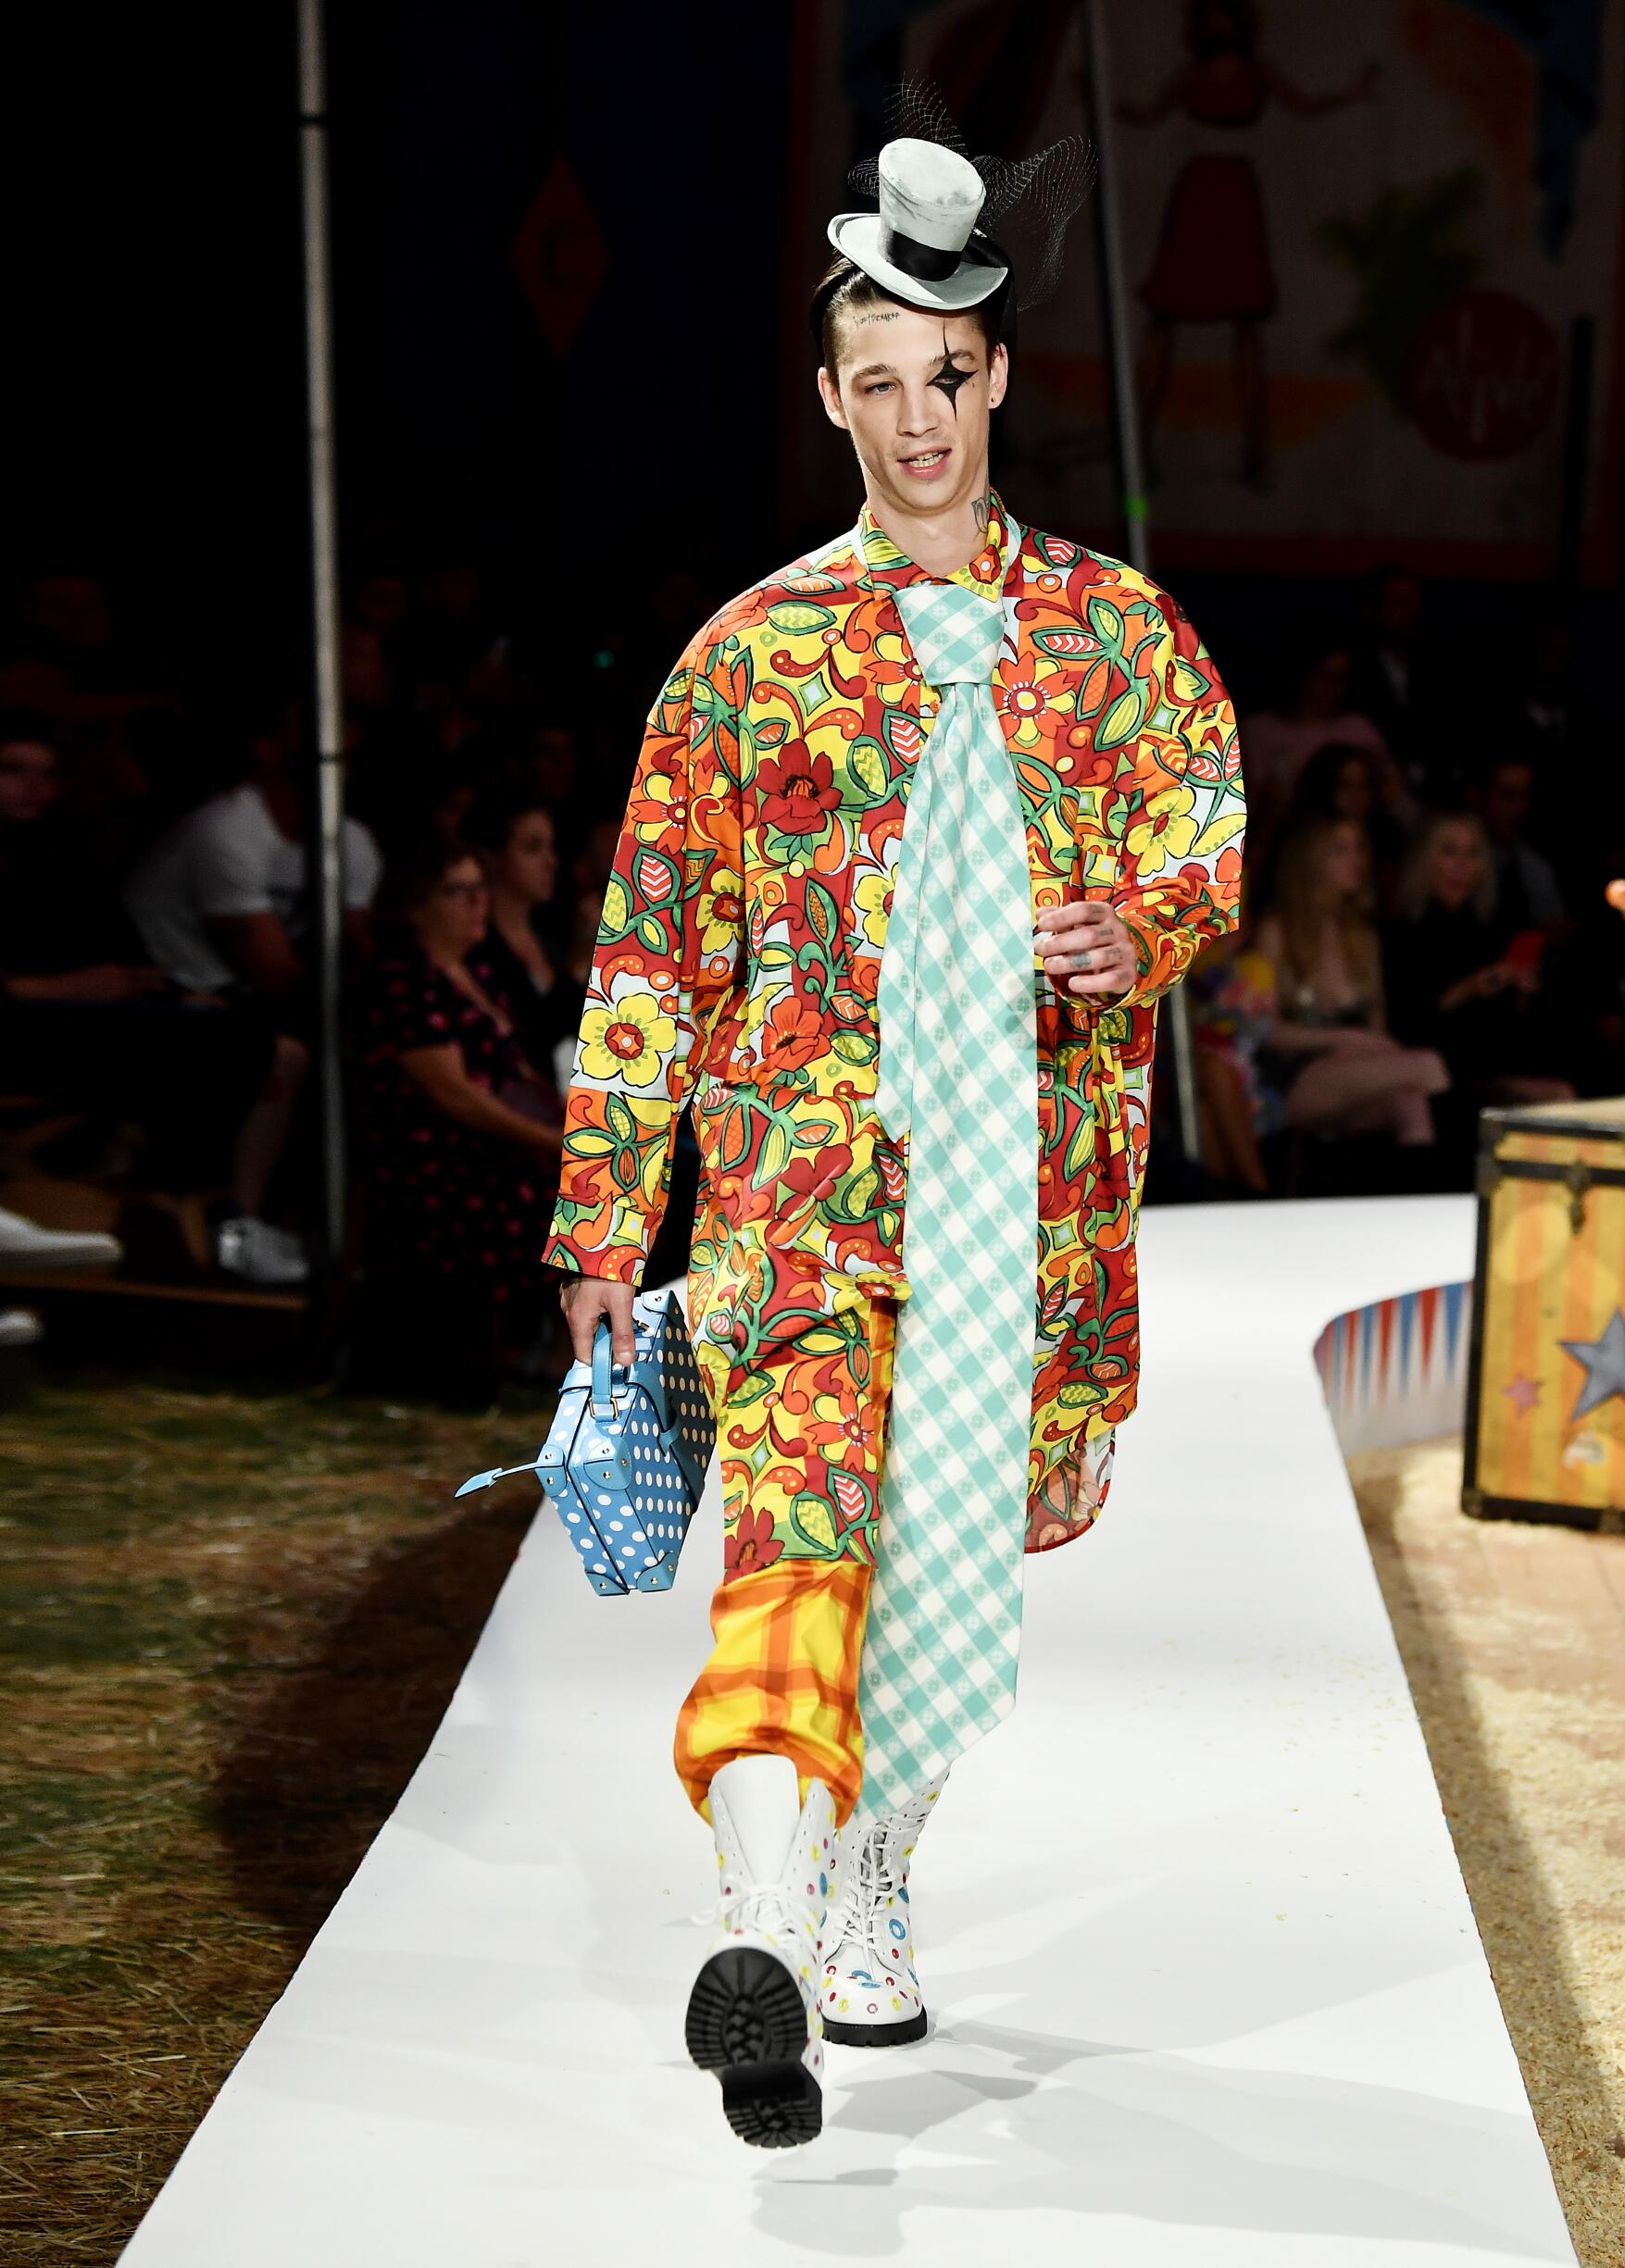 Moschino Spring Summer 2019 Menswear and Women's Resort Collection Look 66 Los Angeles